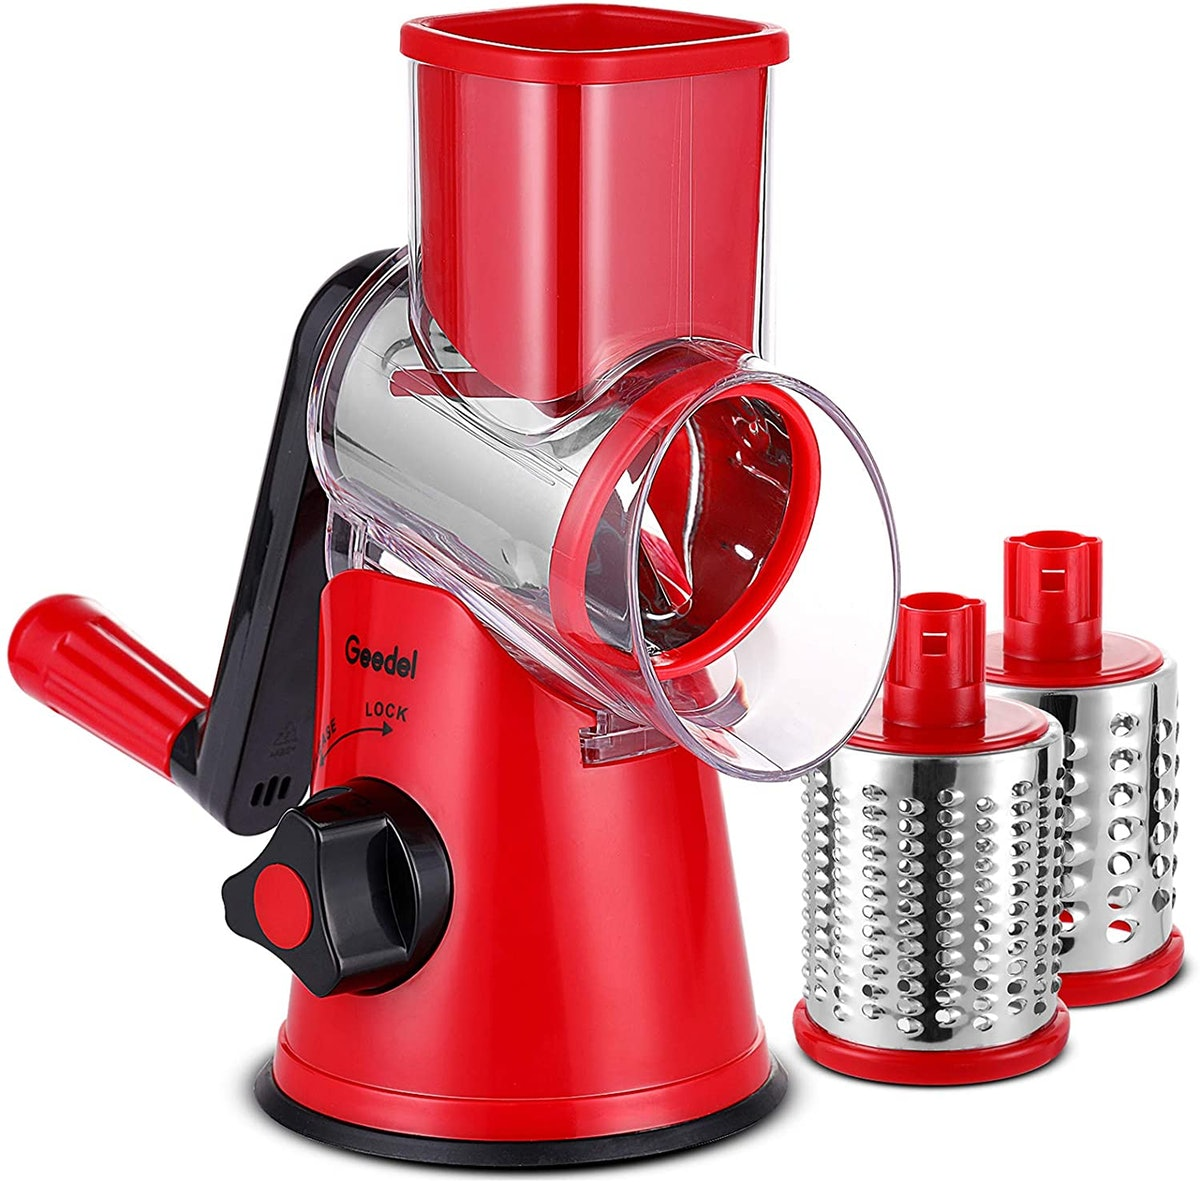 Geedel Rotary Cheese Grater